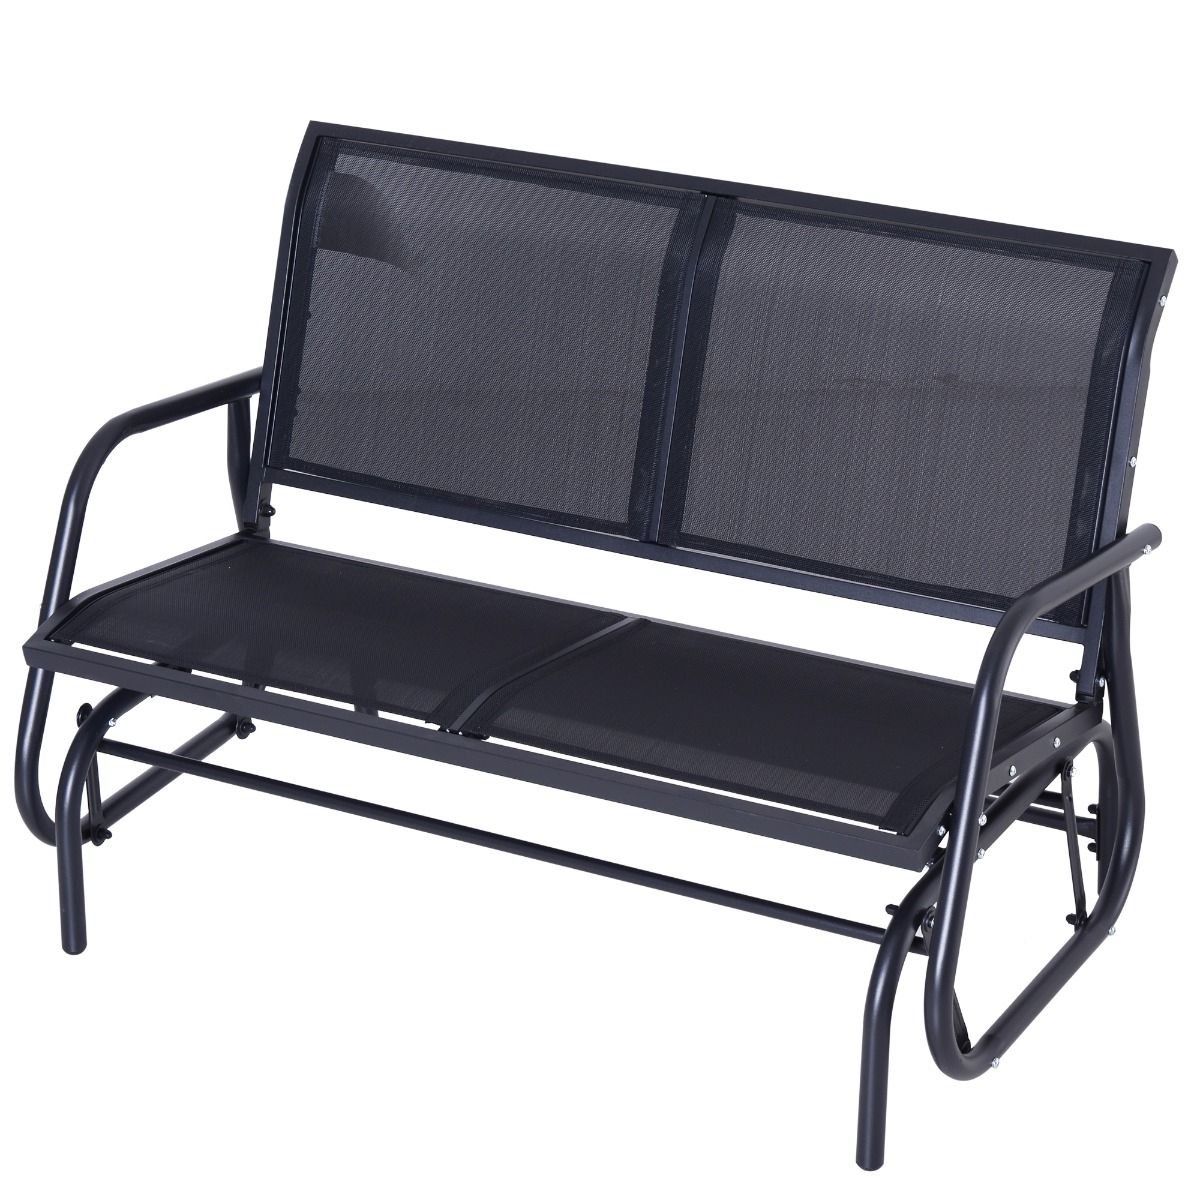 Rocking Love Seats Glider Swing Benches With Sturdy Frame In Most Current Outsunny Patio Double Glider Bench Swing Chair Rocker Heavy Duty Outdoor Garden Black (View 26 of 30)